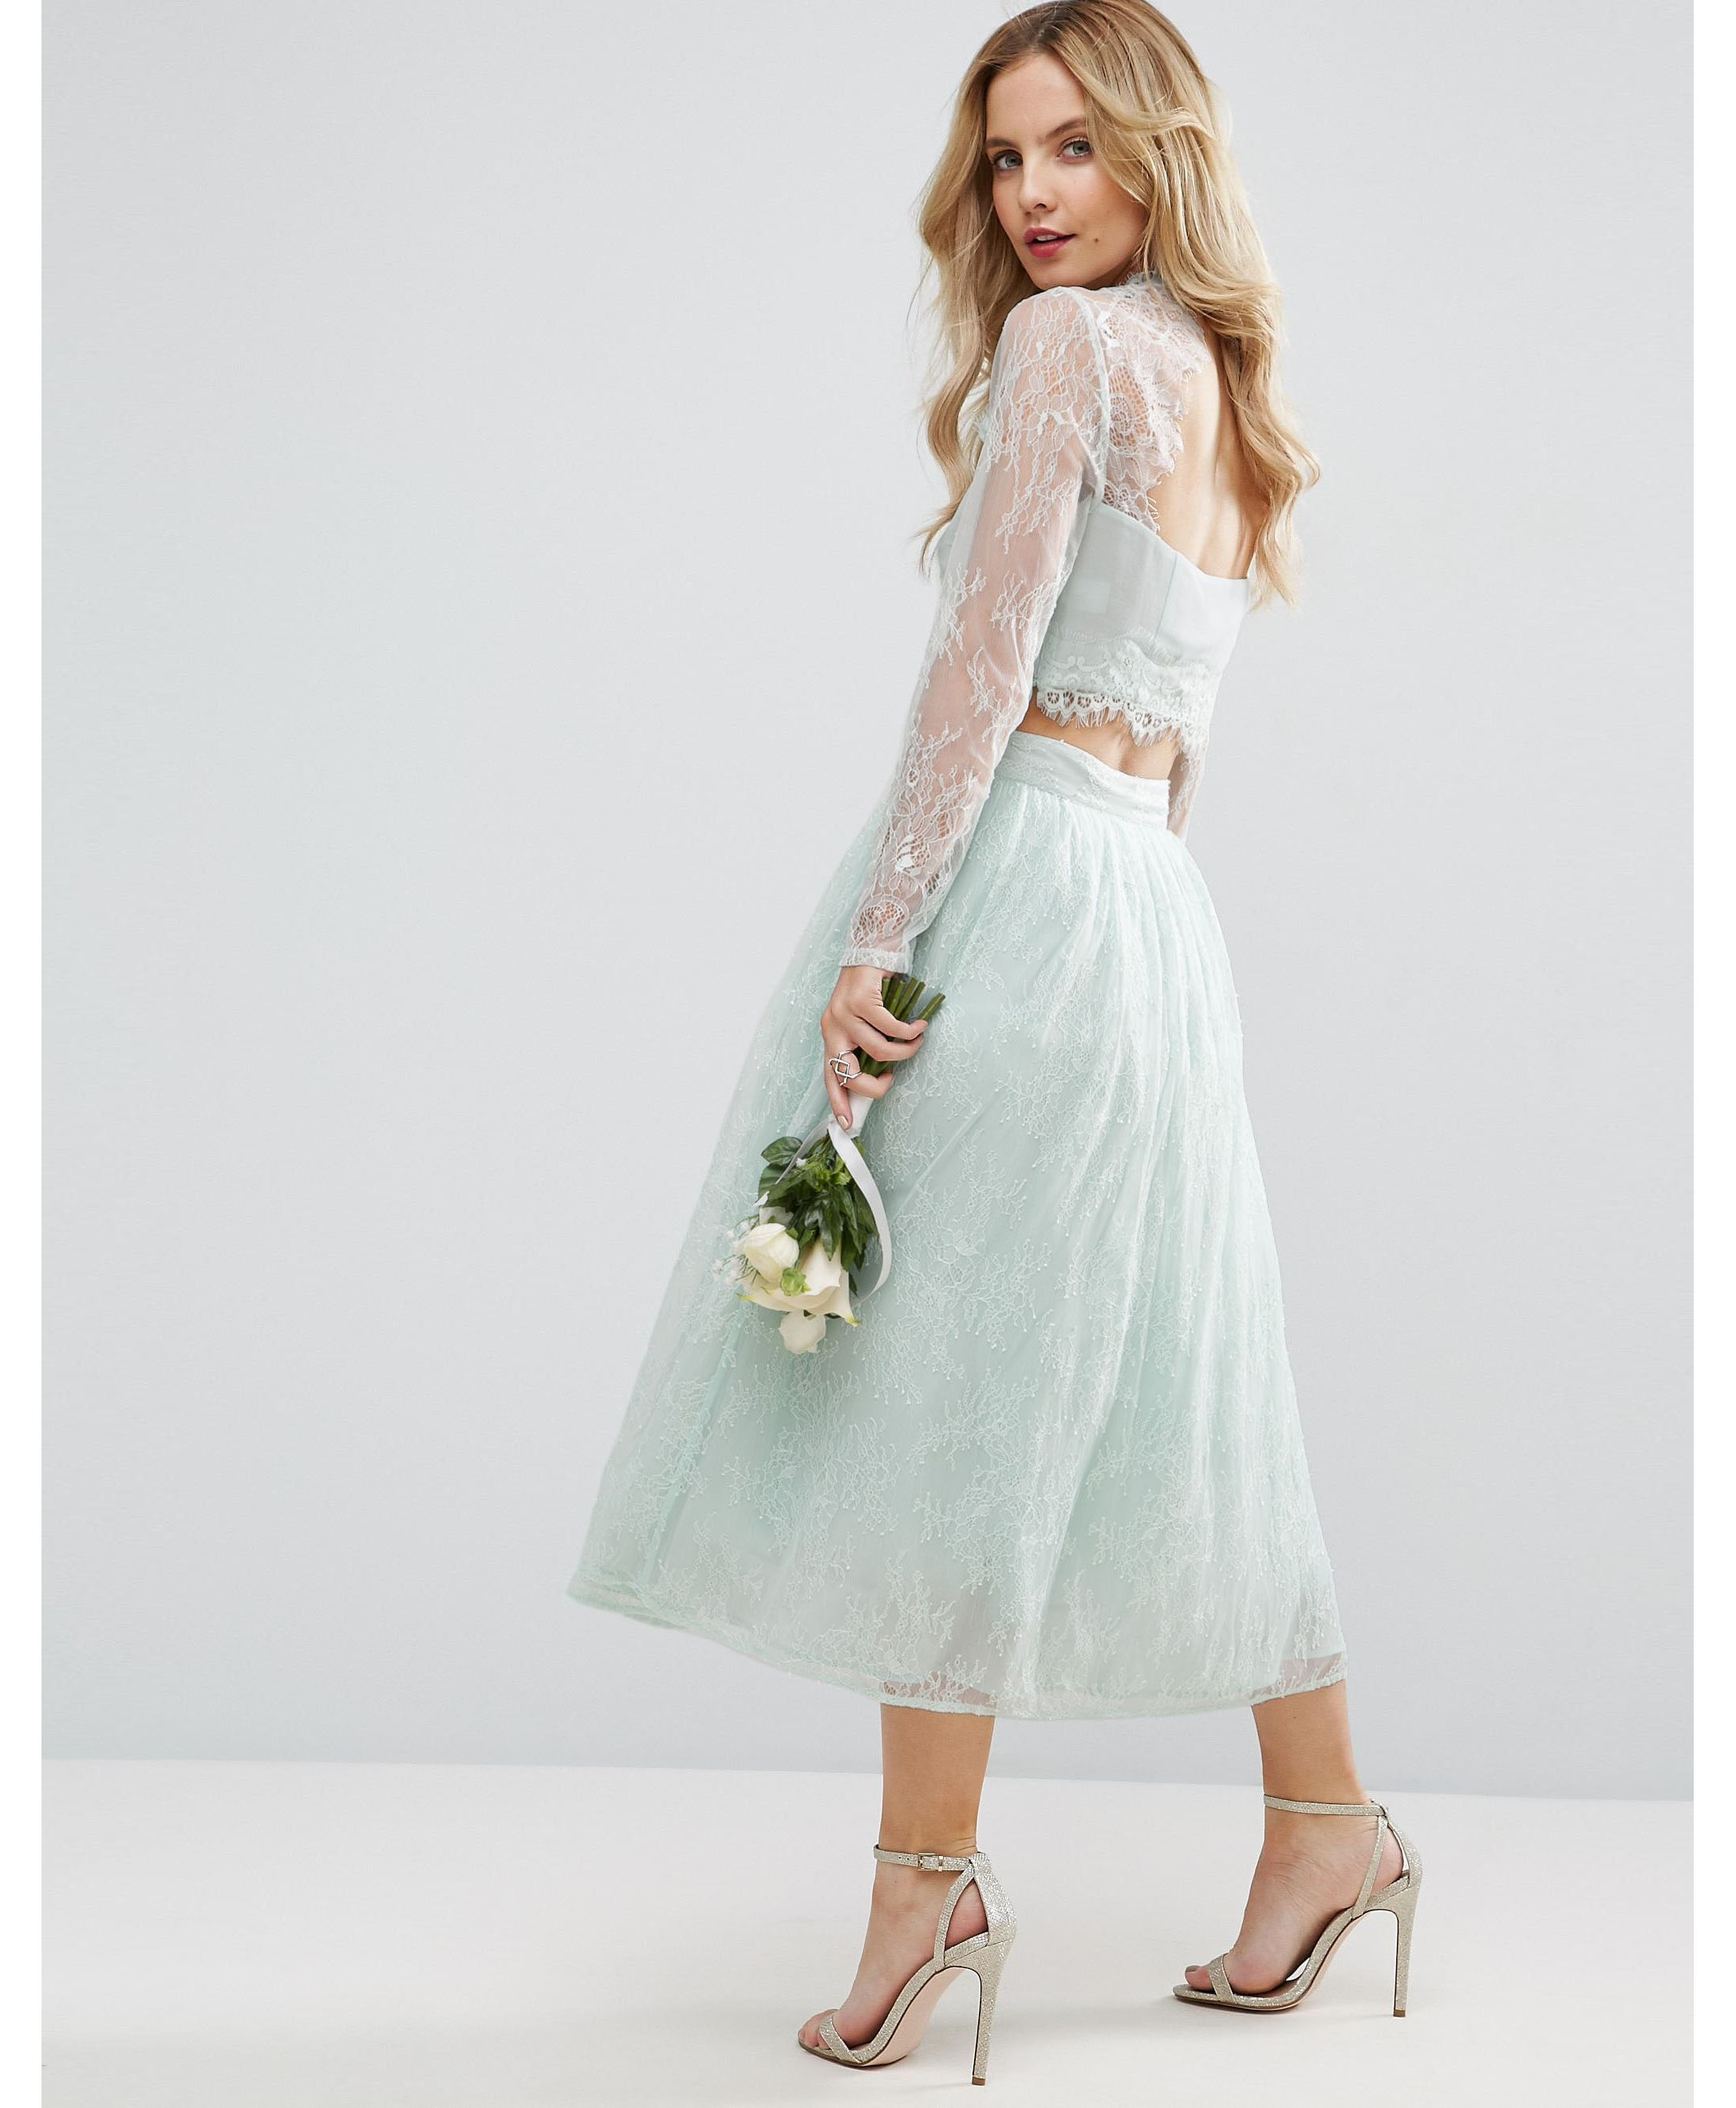 ★送関込★ASOS PETITE Bridesmaid Lace Insert Top